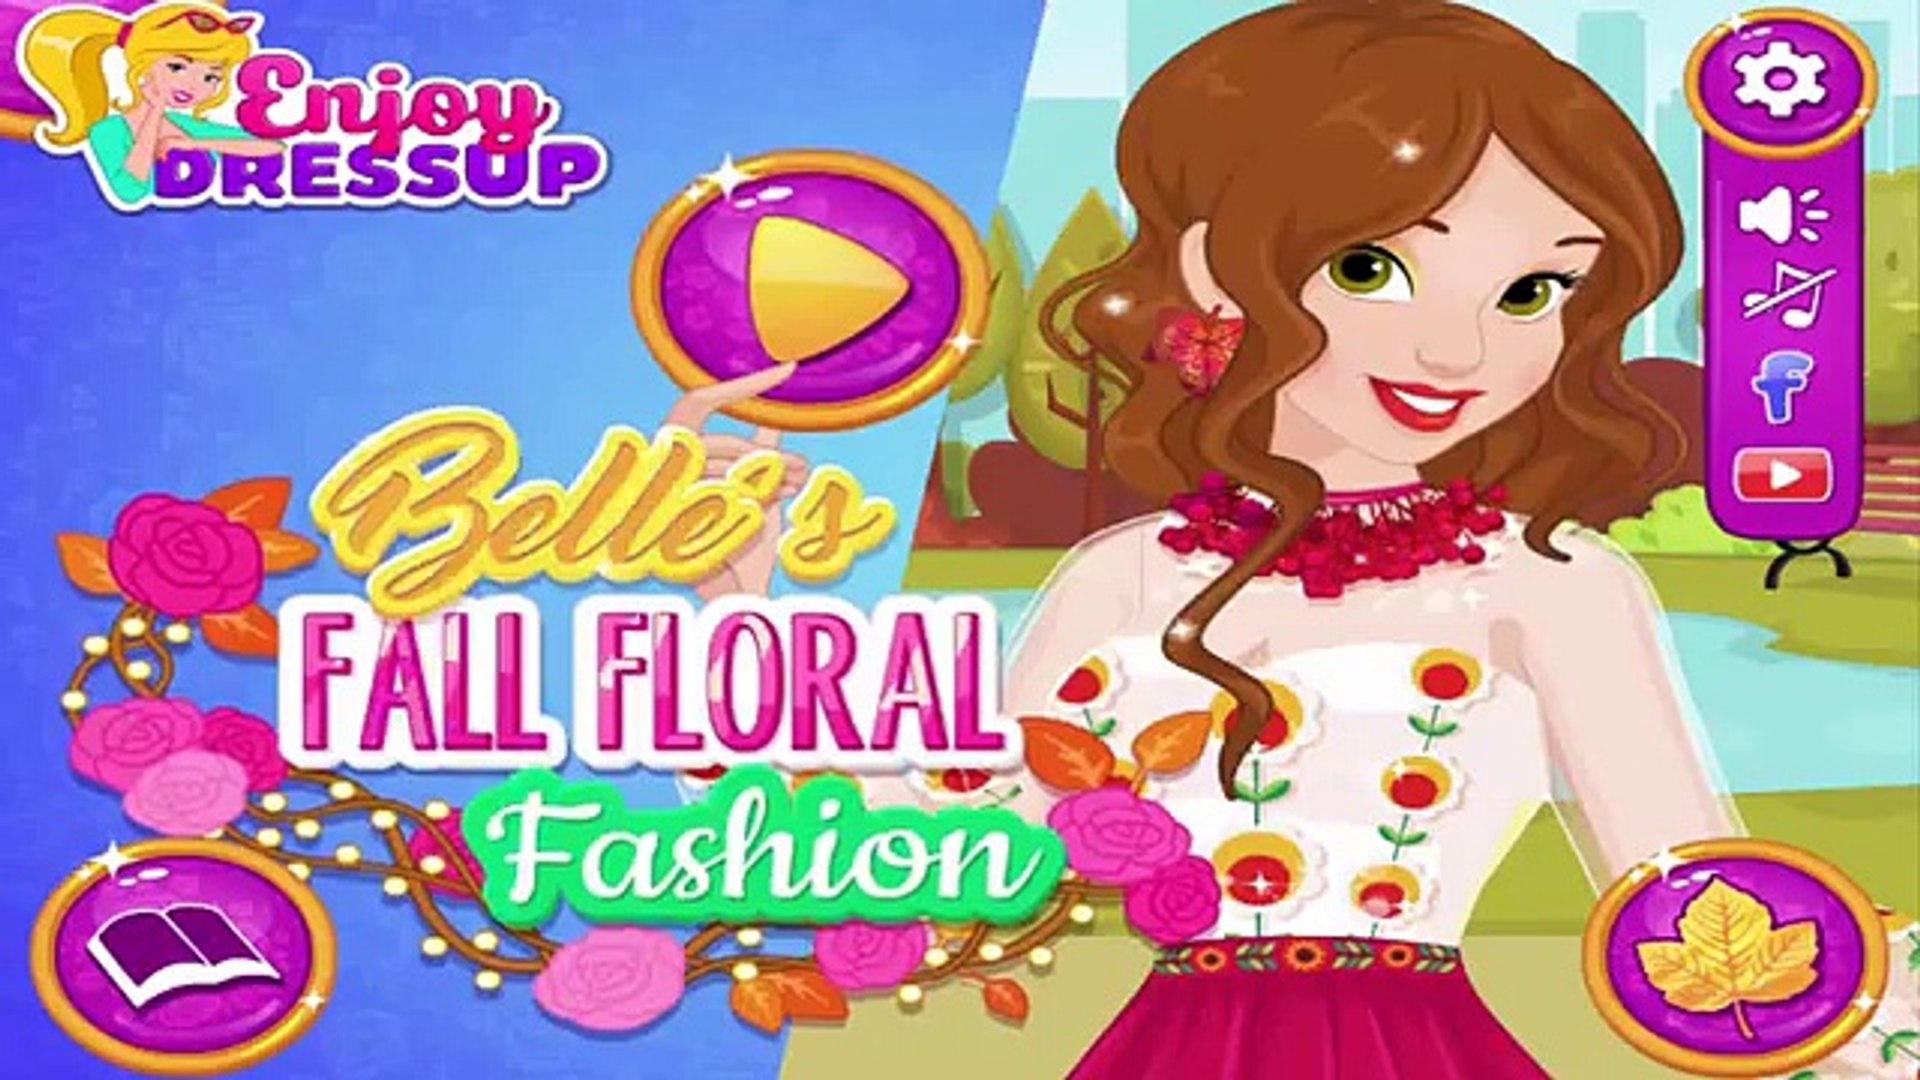 Belles Fall Floral Fashion: Beauty and The Beast Games